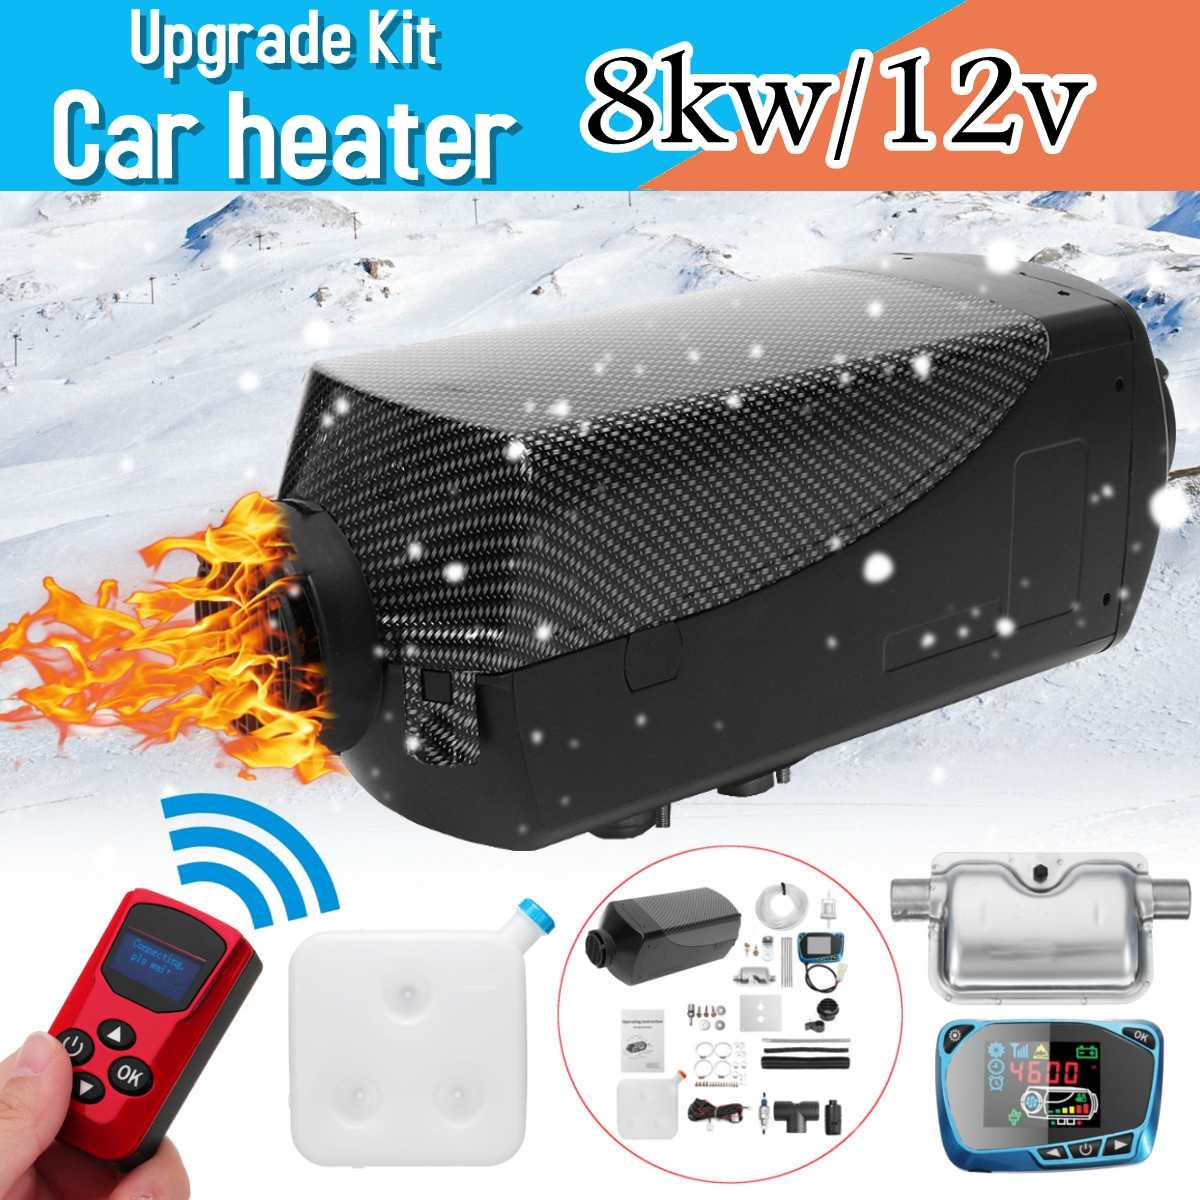 12V 8KW Diesels Air Car Heater Silencer <font><b>15L</b></font> <font><b>Tank</b></font> Car Truck Boat Motorhome Parking With Remote Control LCD Monitor for RV image